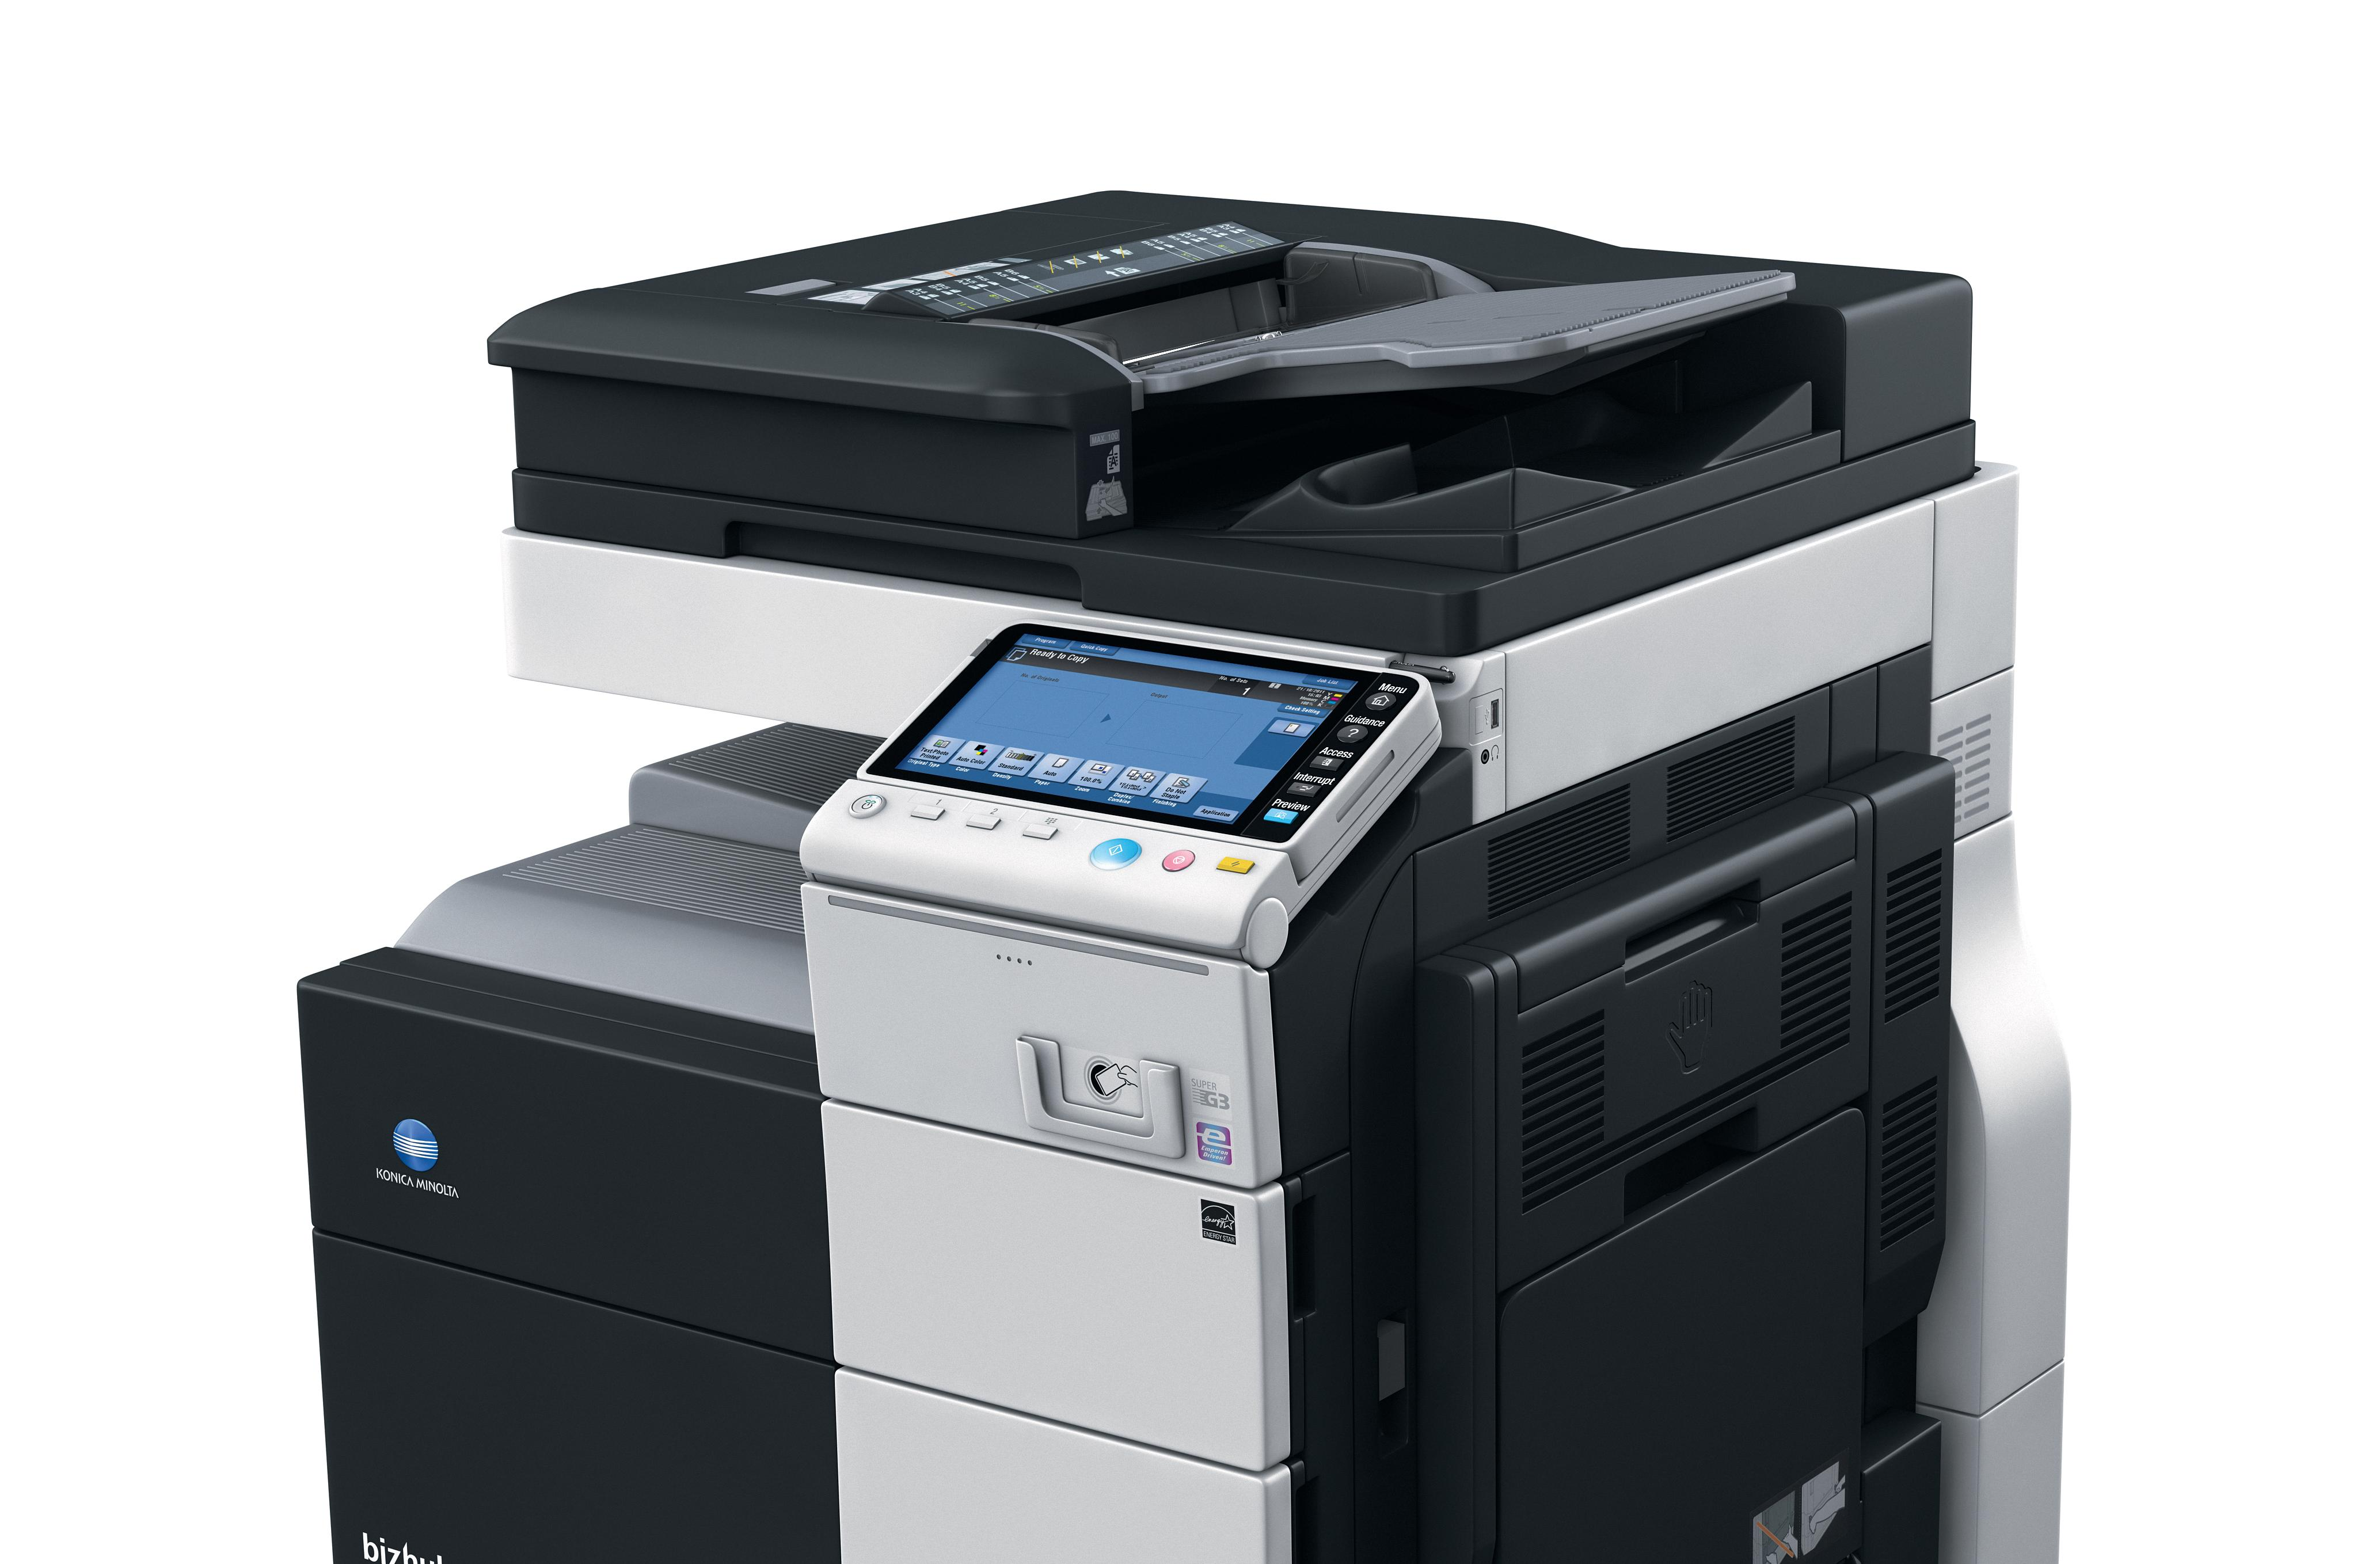 Konica Minolta Bizhub C654 Printer PCL/Fax Download Driver